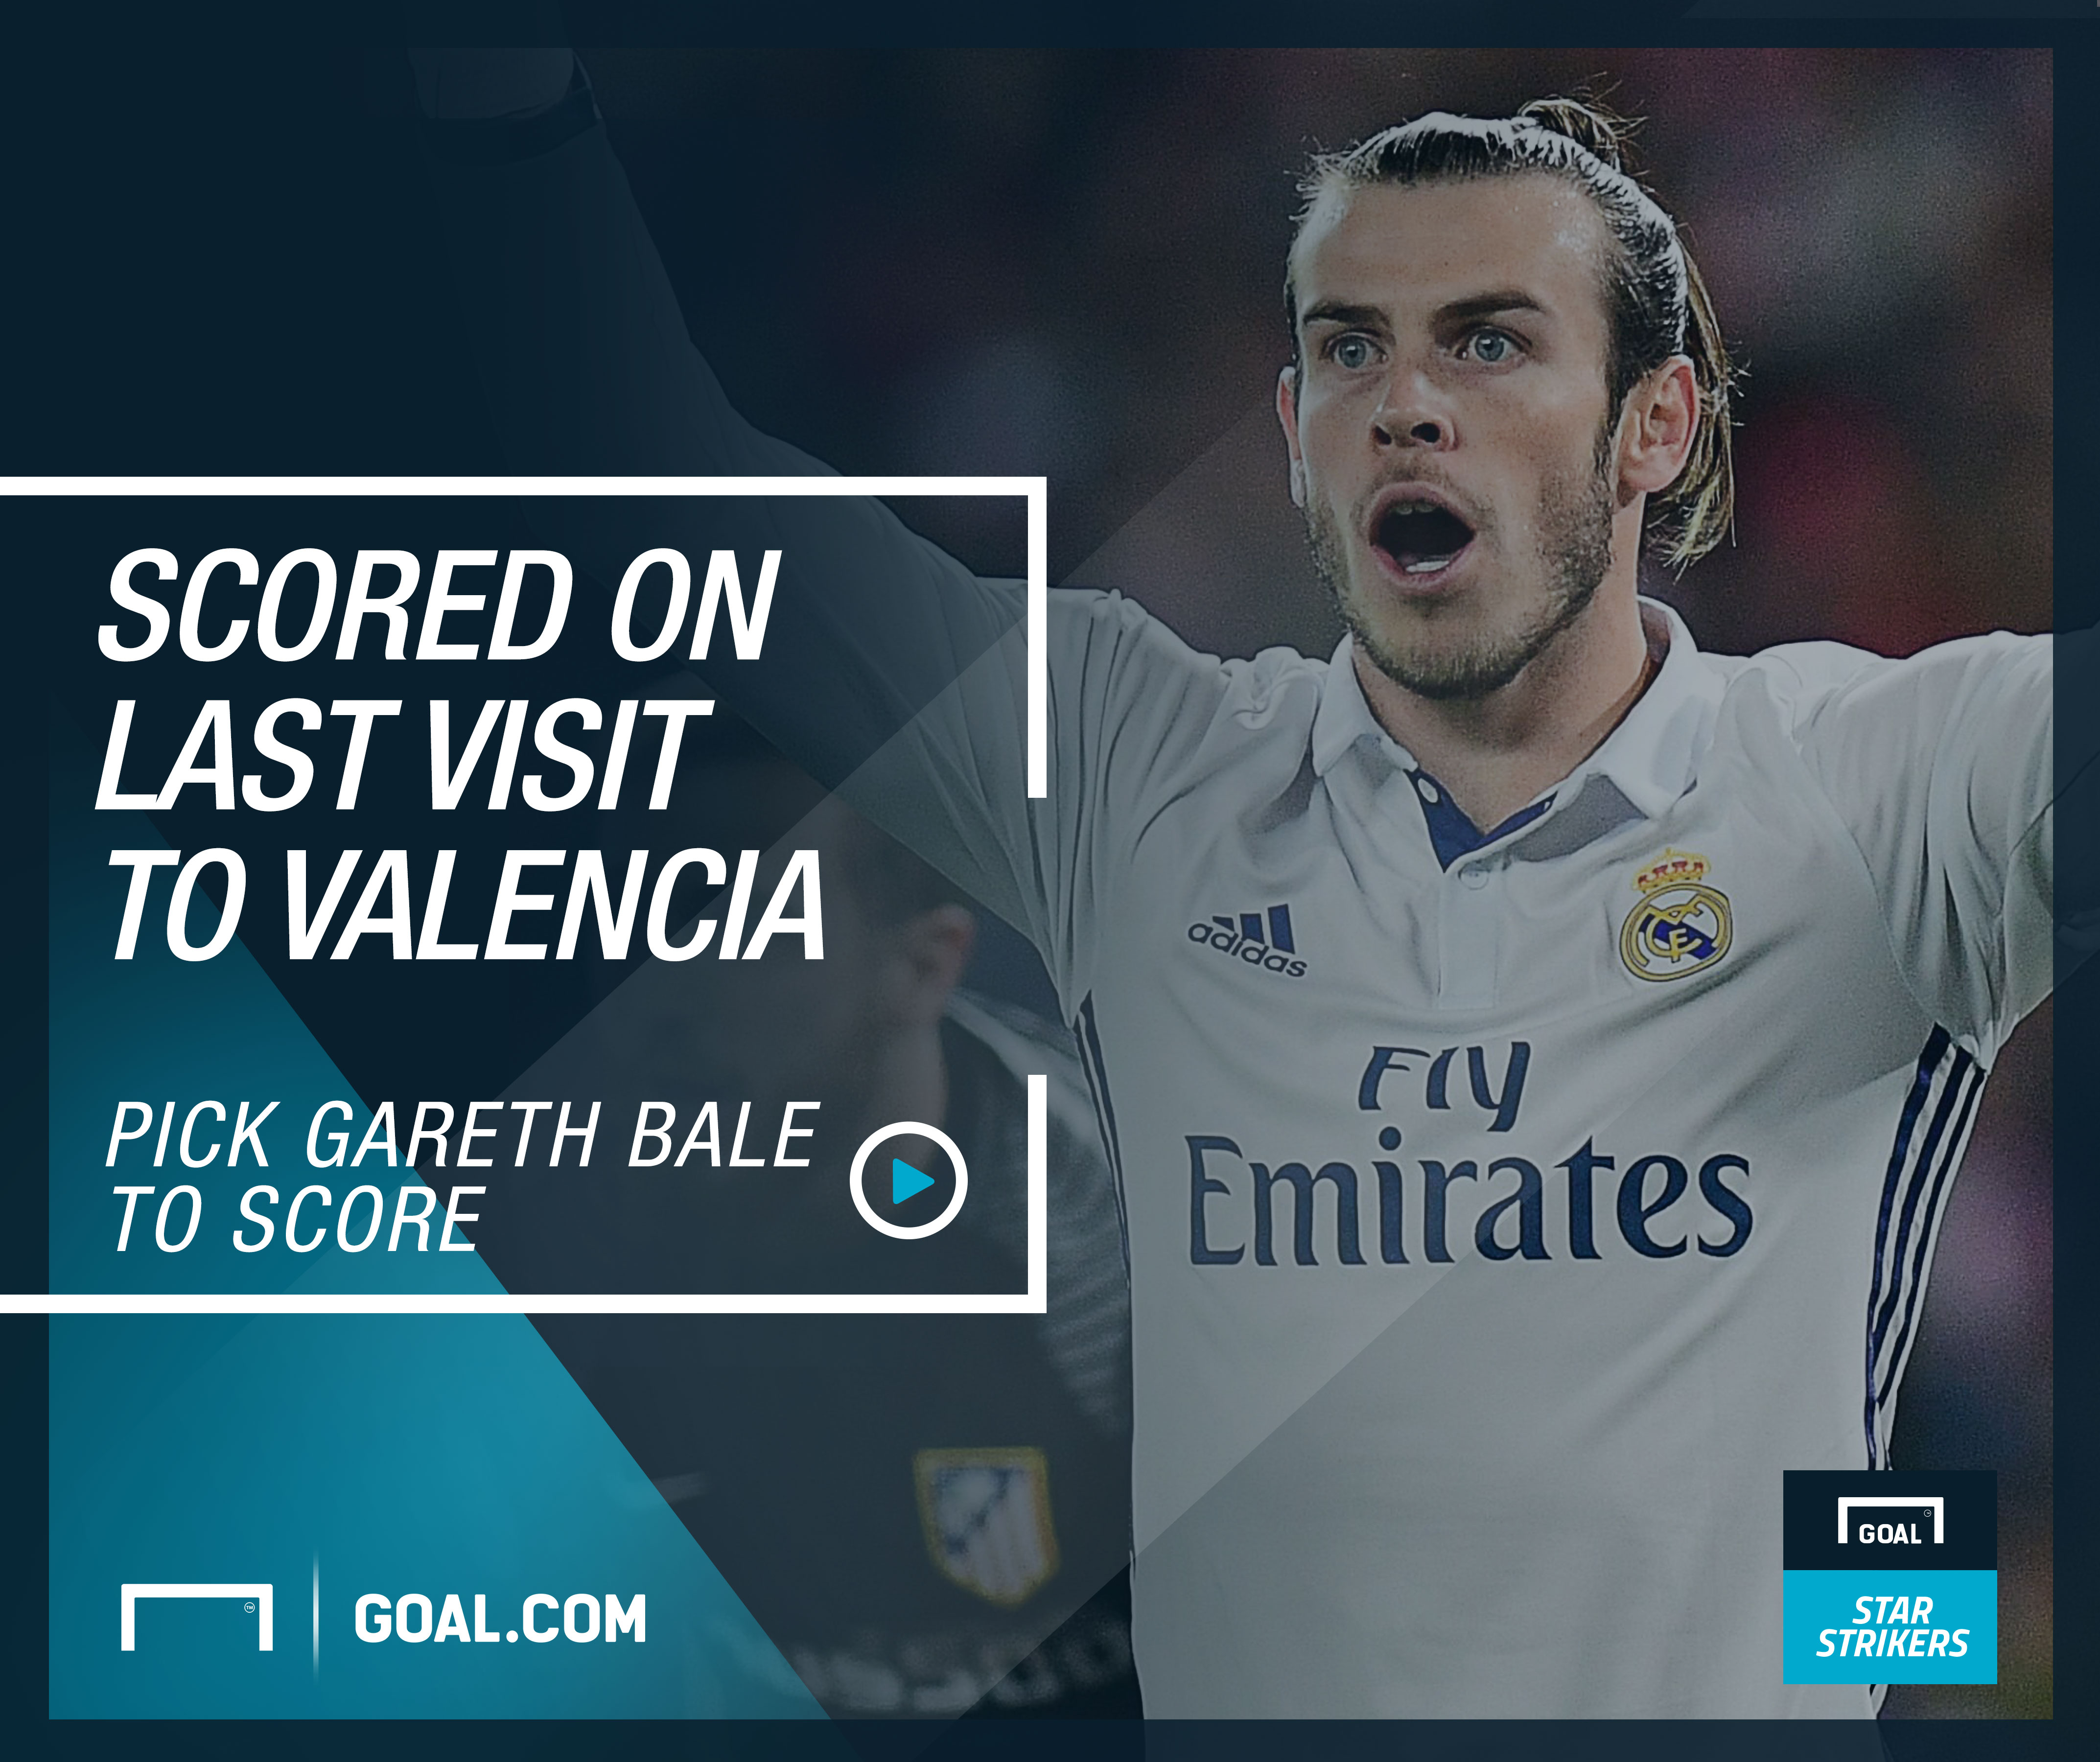 Goal Star Strikers Gareth Bale